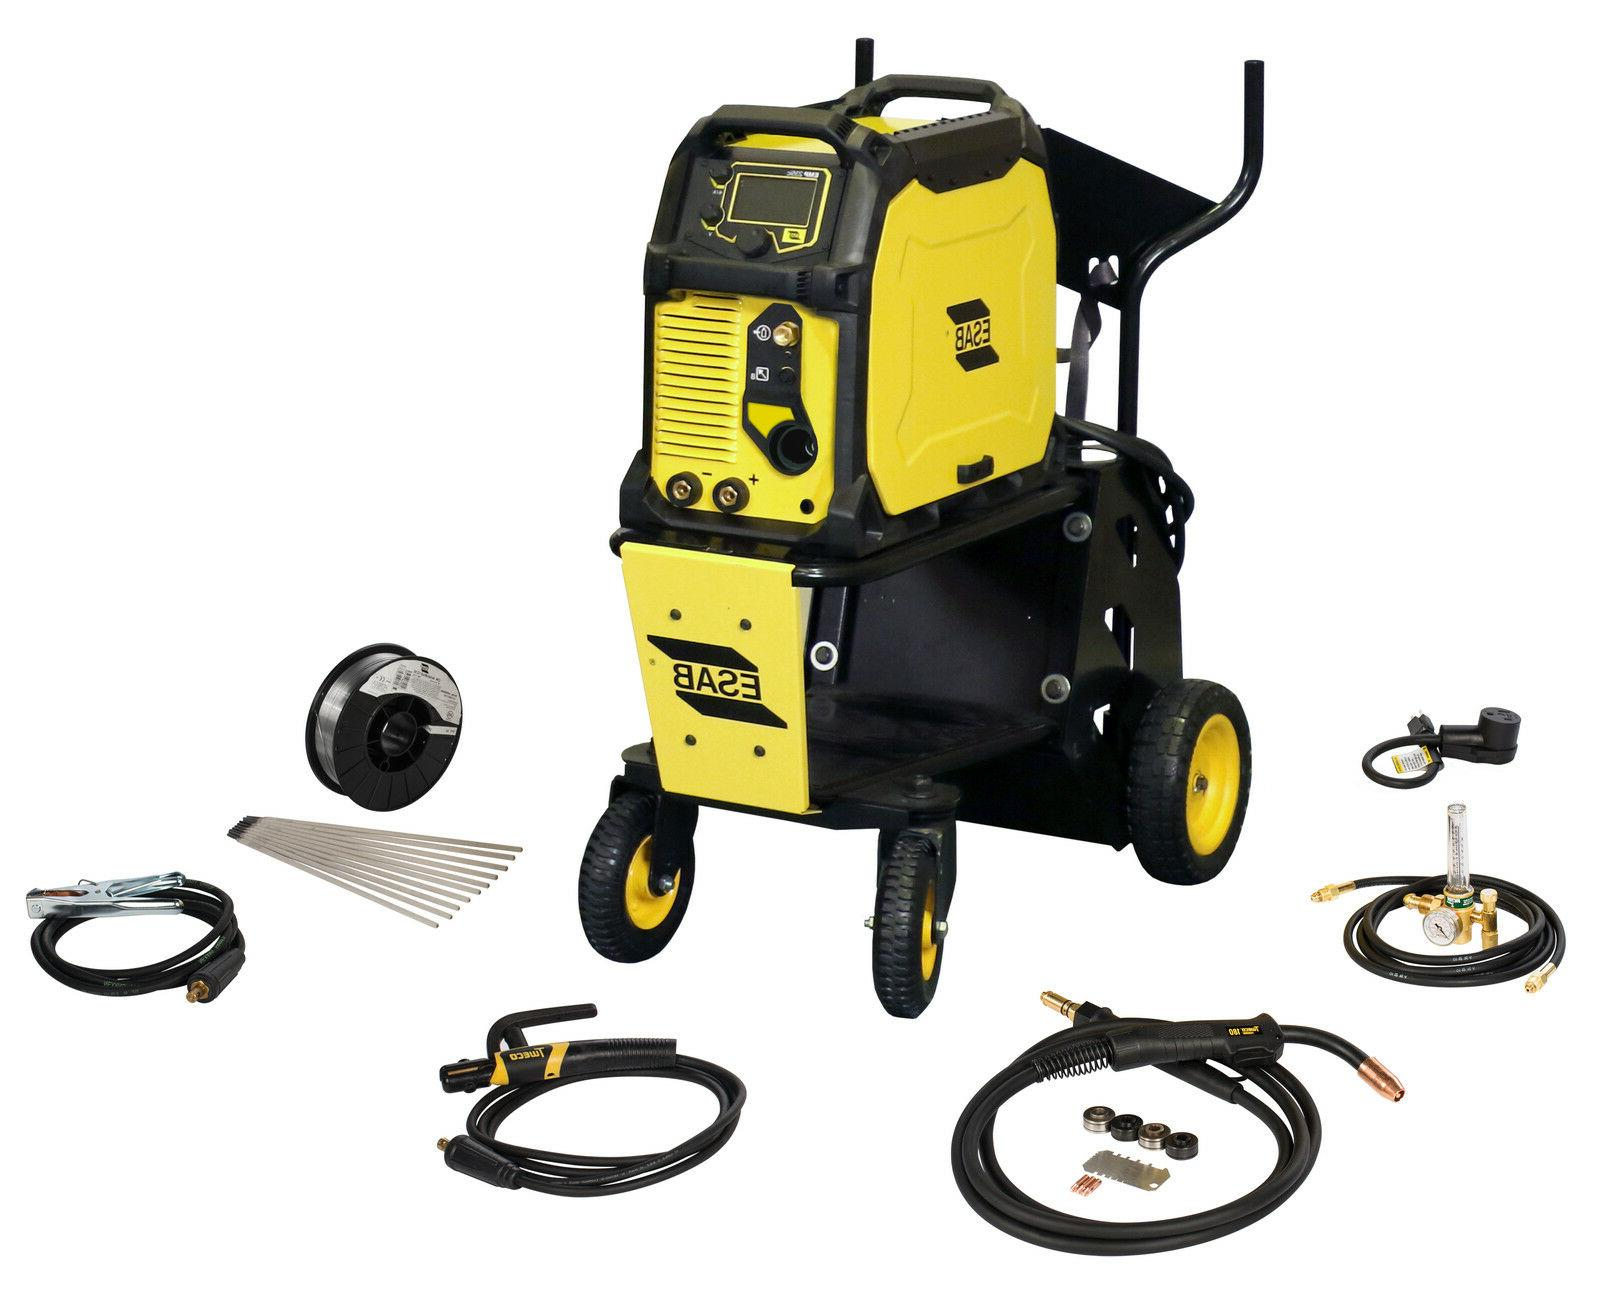 ESAB Multiprocess Welder